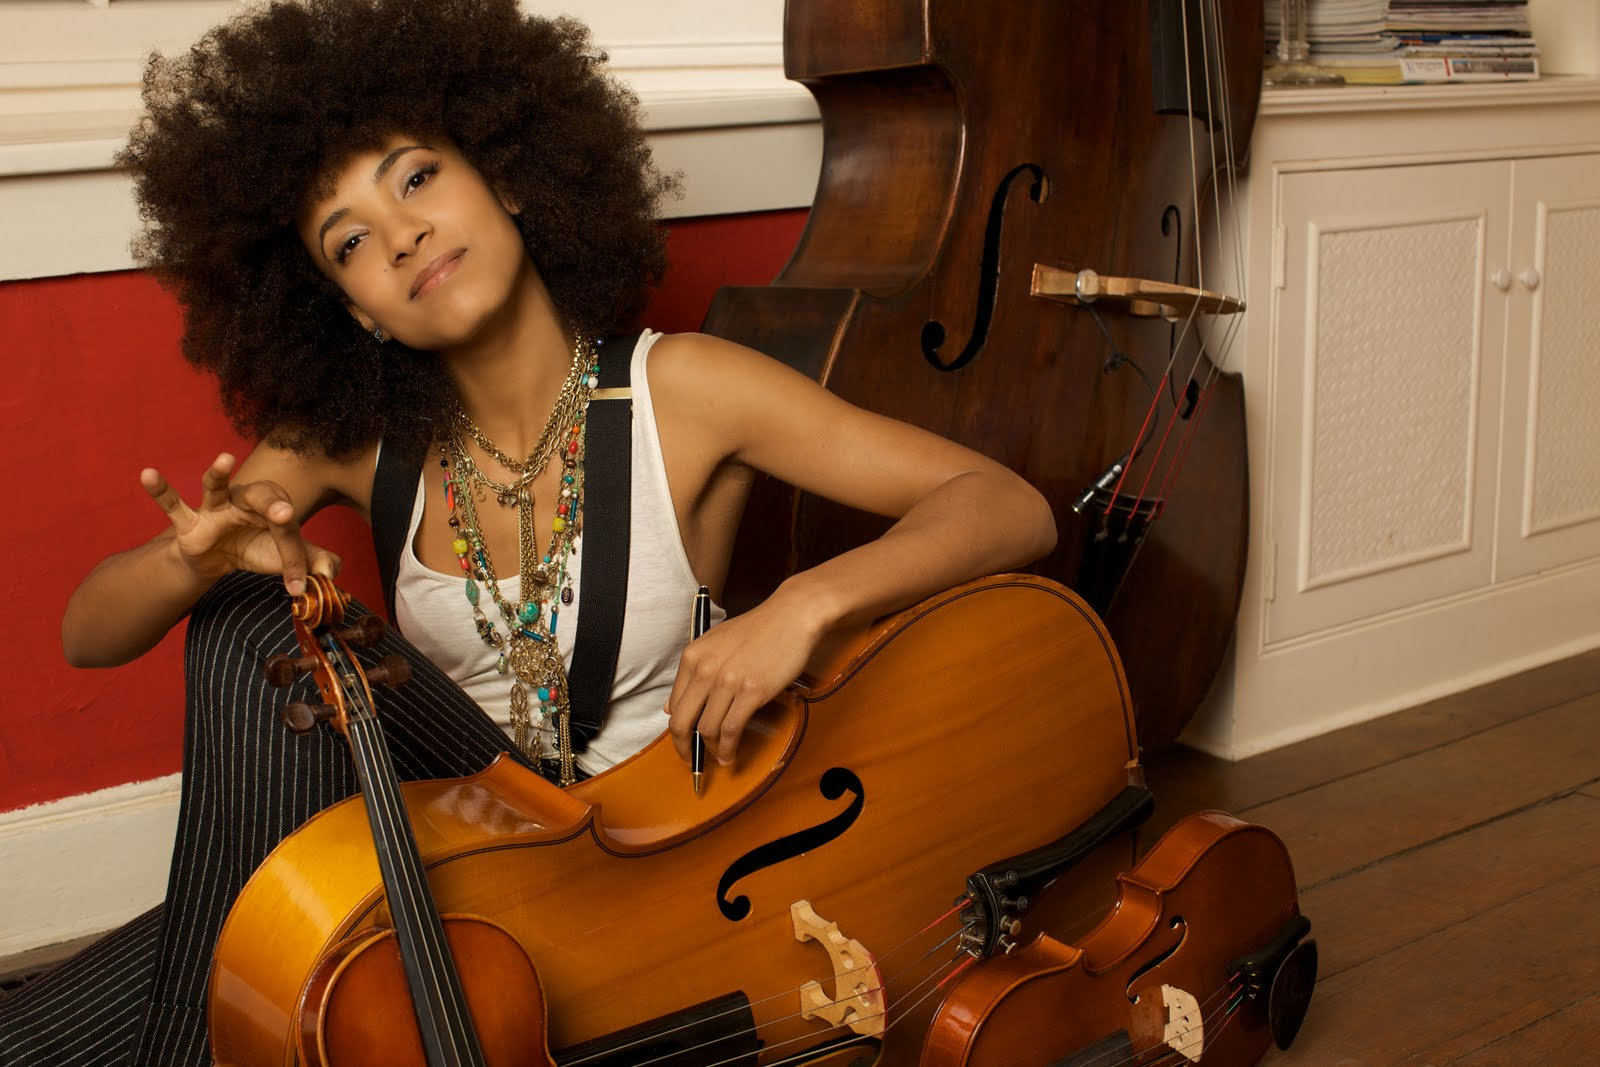 esperanza_spalding_natural_hair3.jpg